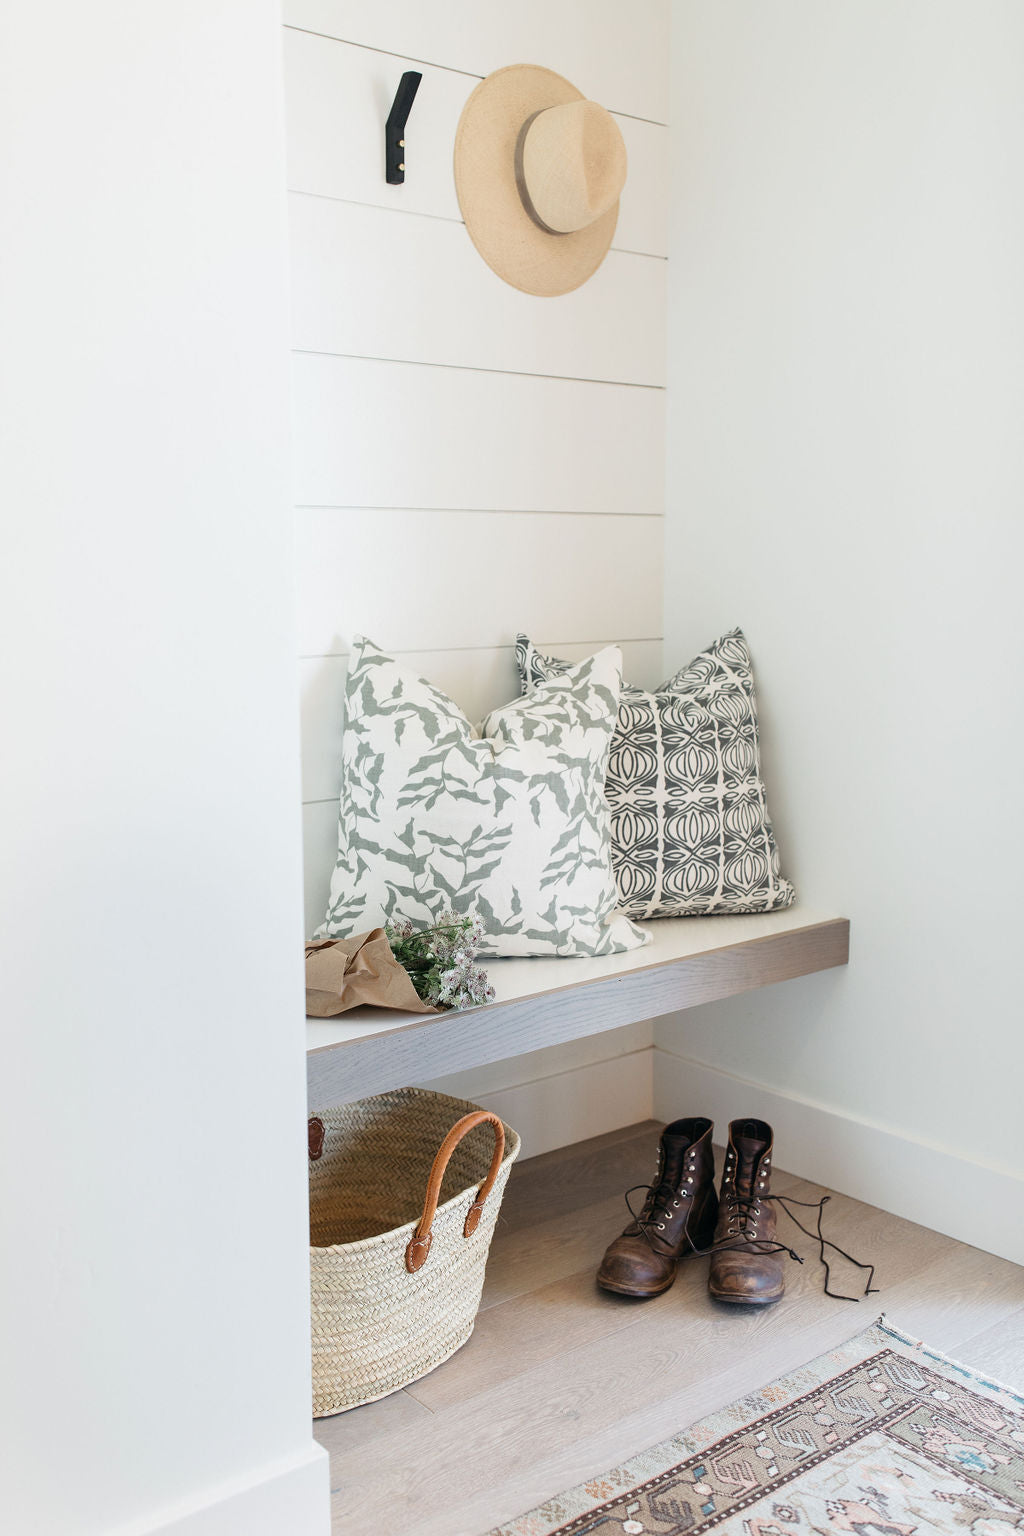 greige design shop + interiors alexandria project san diego california white shiplap entry bench